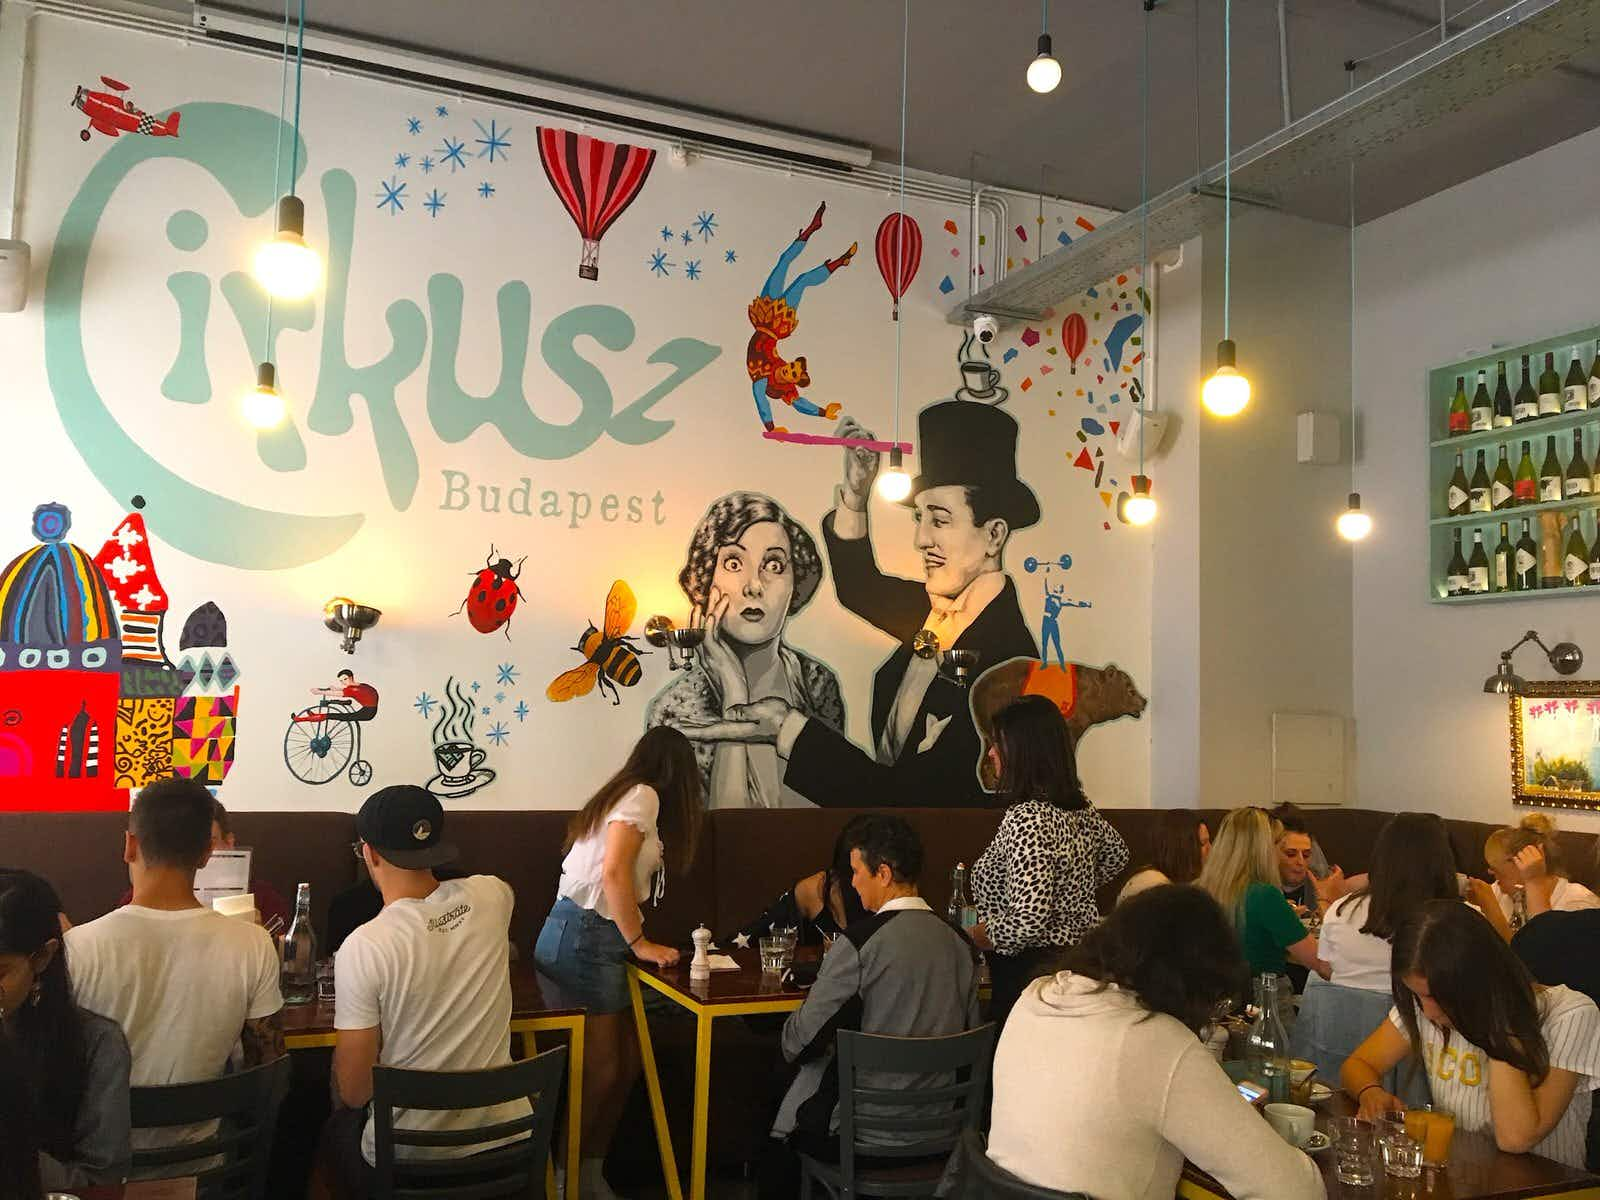 Dinners cram into a high-ceilinged cafe with light bulbs hanging from long wires; the back wall is covered in a vibrant mural of balloons, flying trapeez artists, planes and lady birds